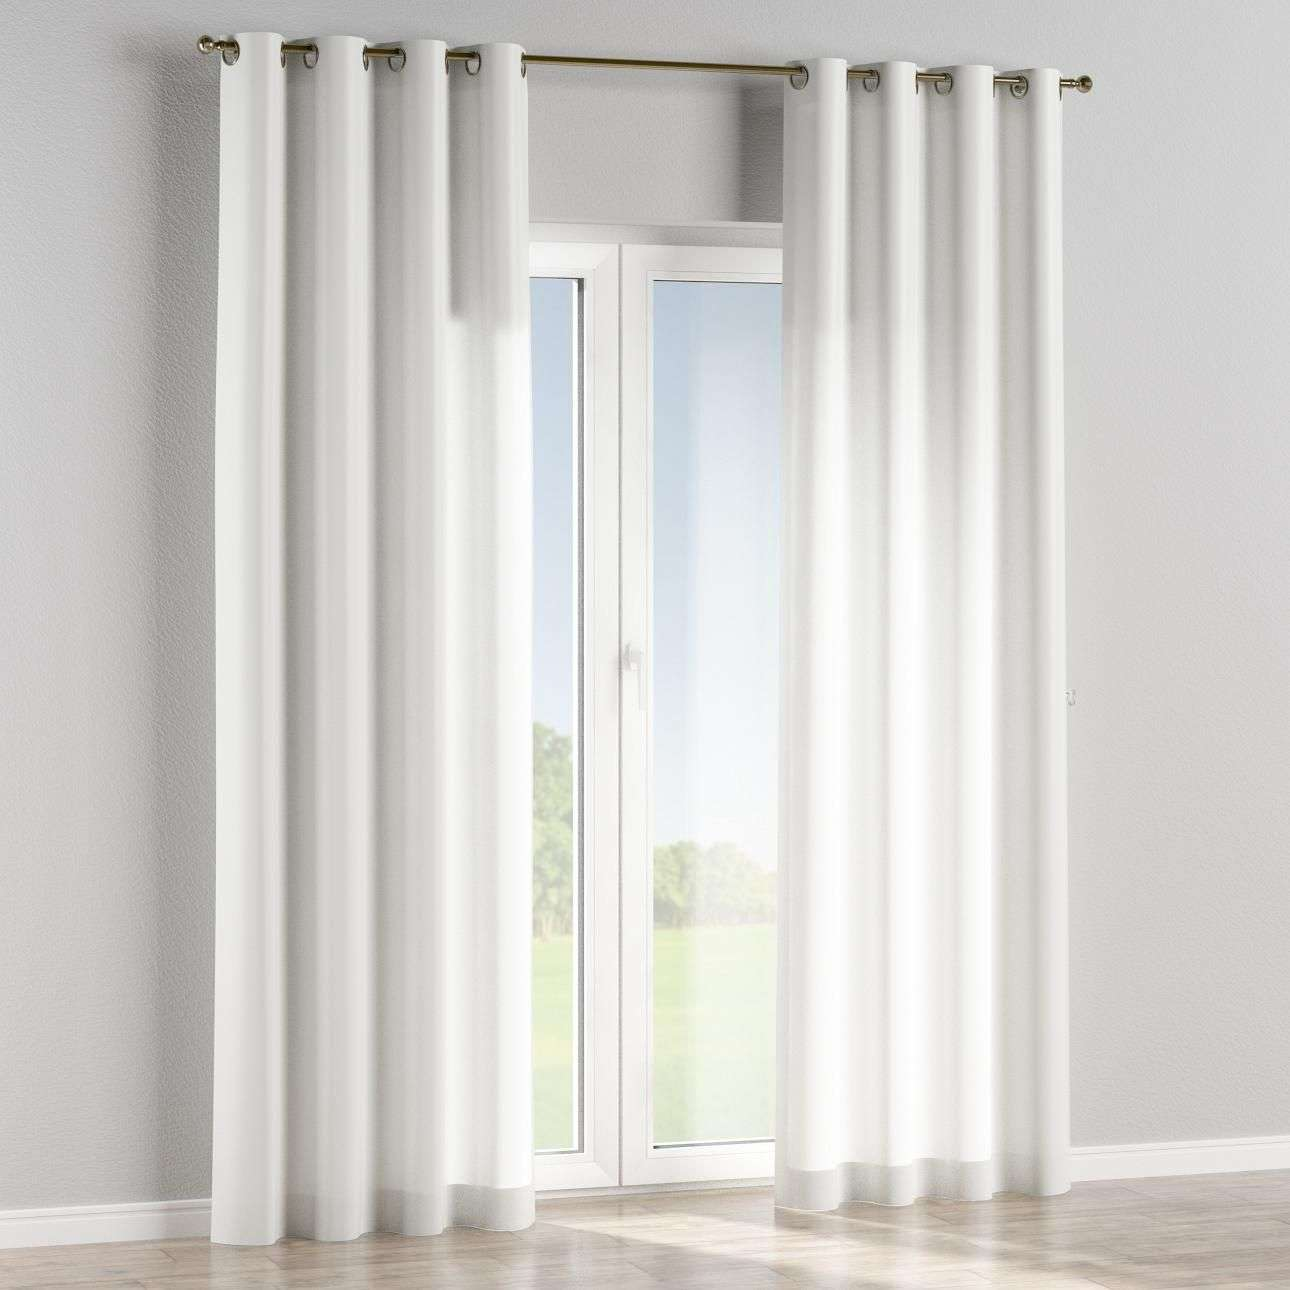 Eyelet lined curtains in collection Norge, fabric: 140-92